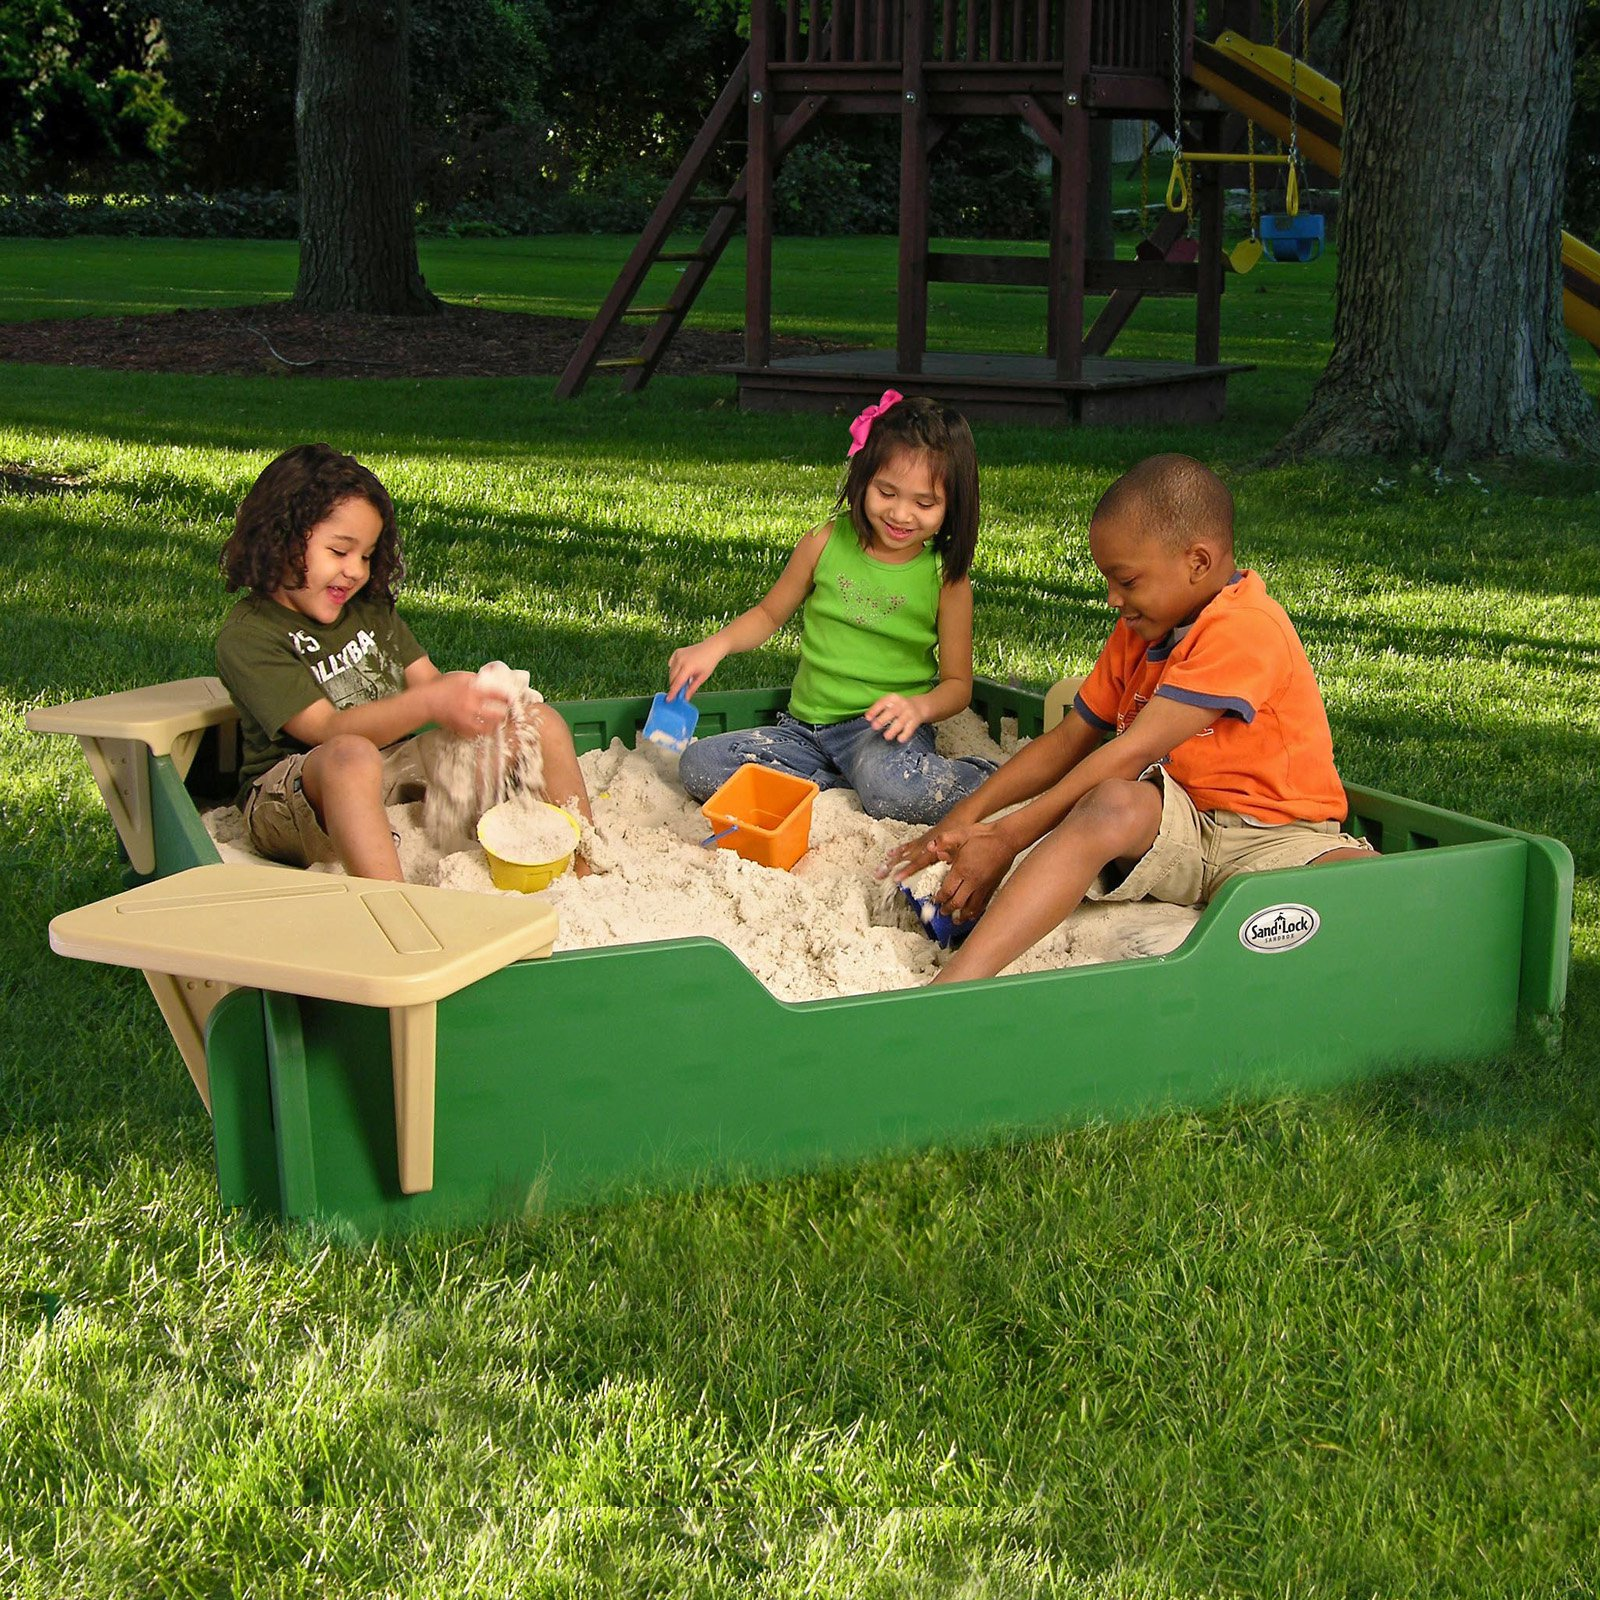 Sandlock 5 x 5-ft. Sandbox with Cover